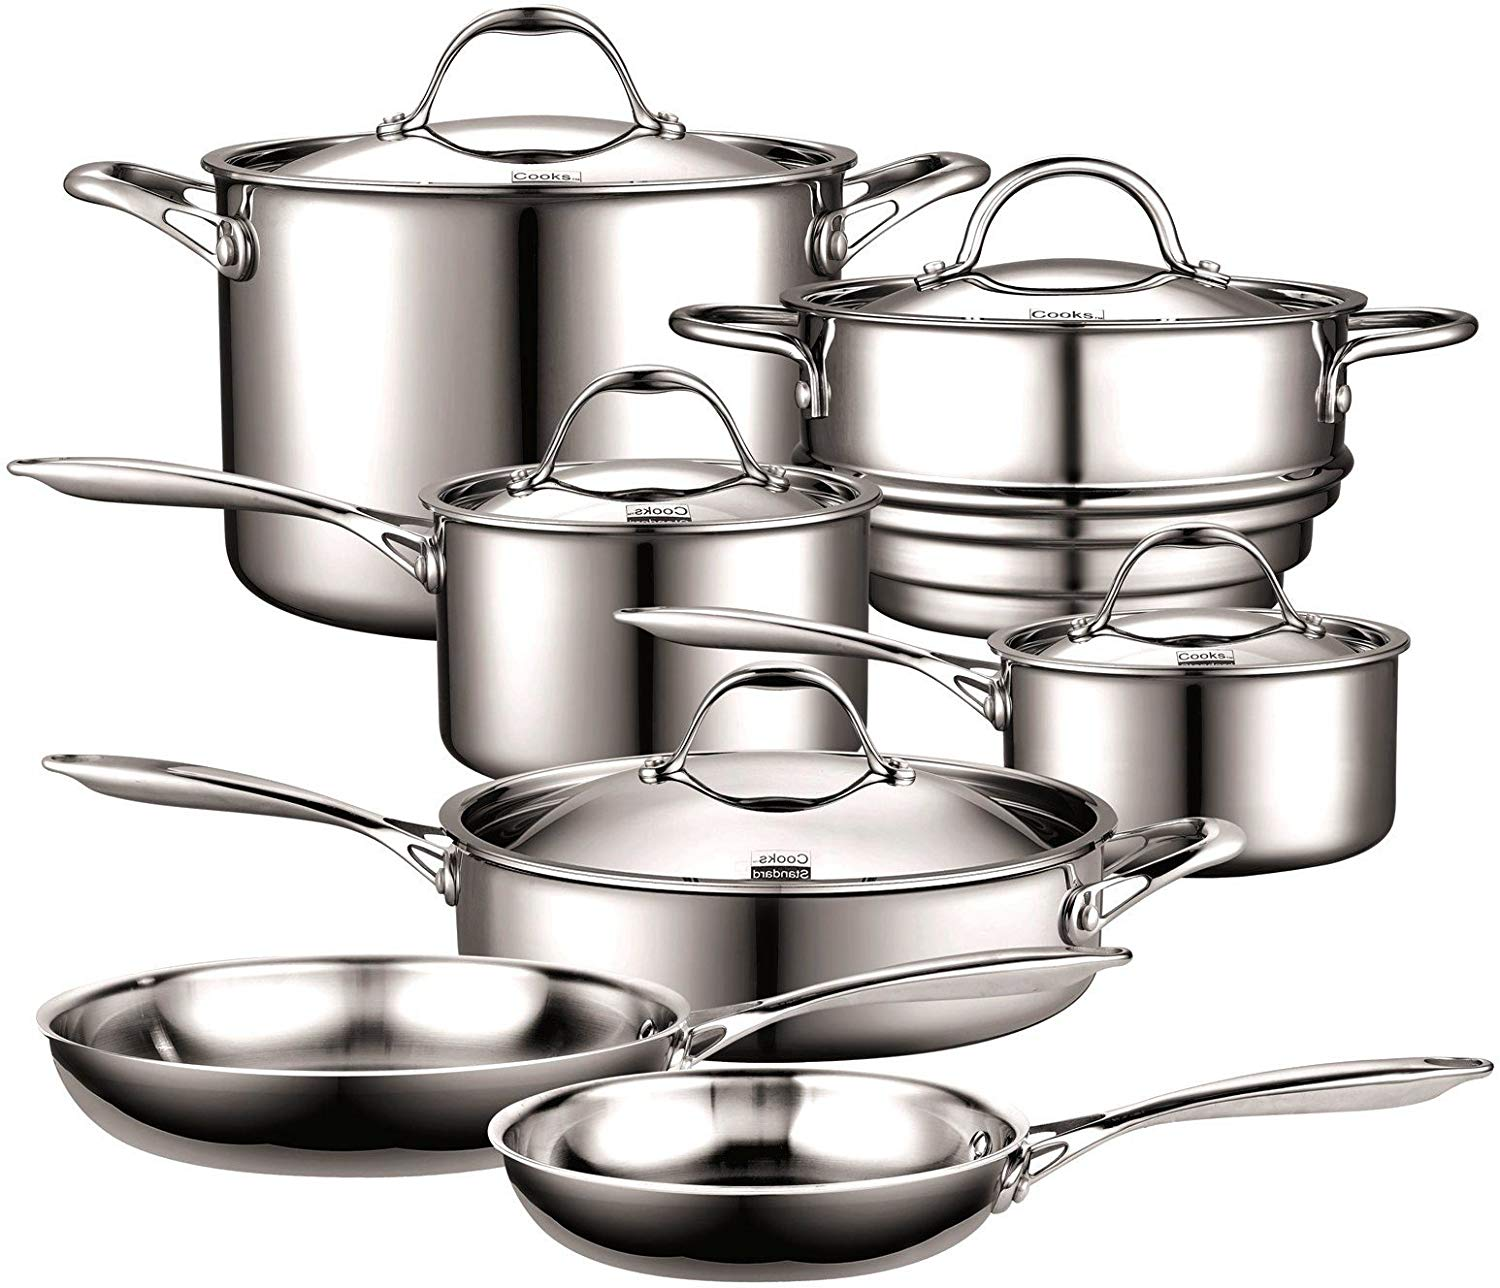 Cooks standard multi-ply clad stainless-steel cookware